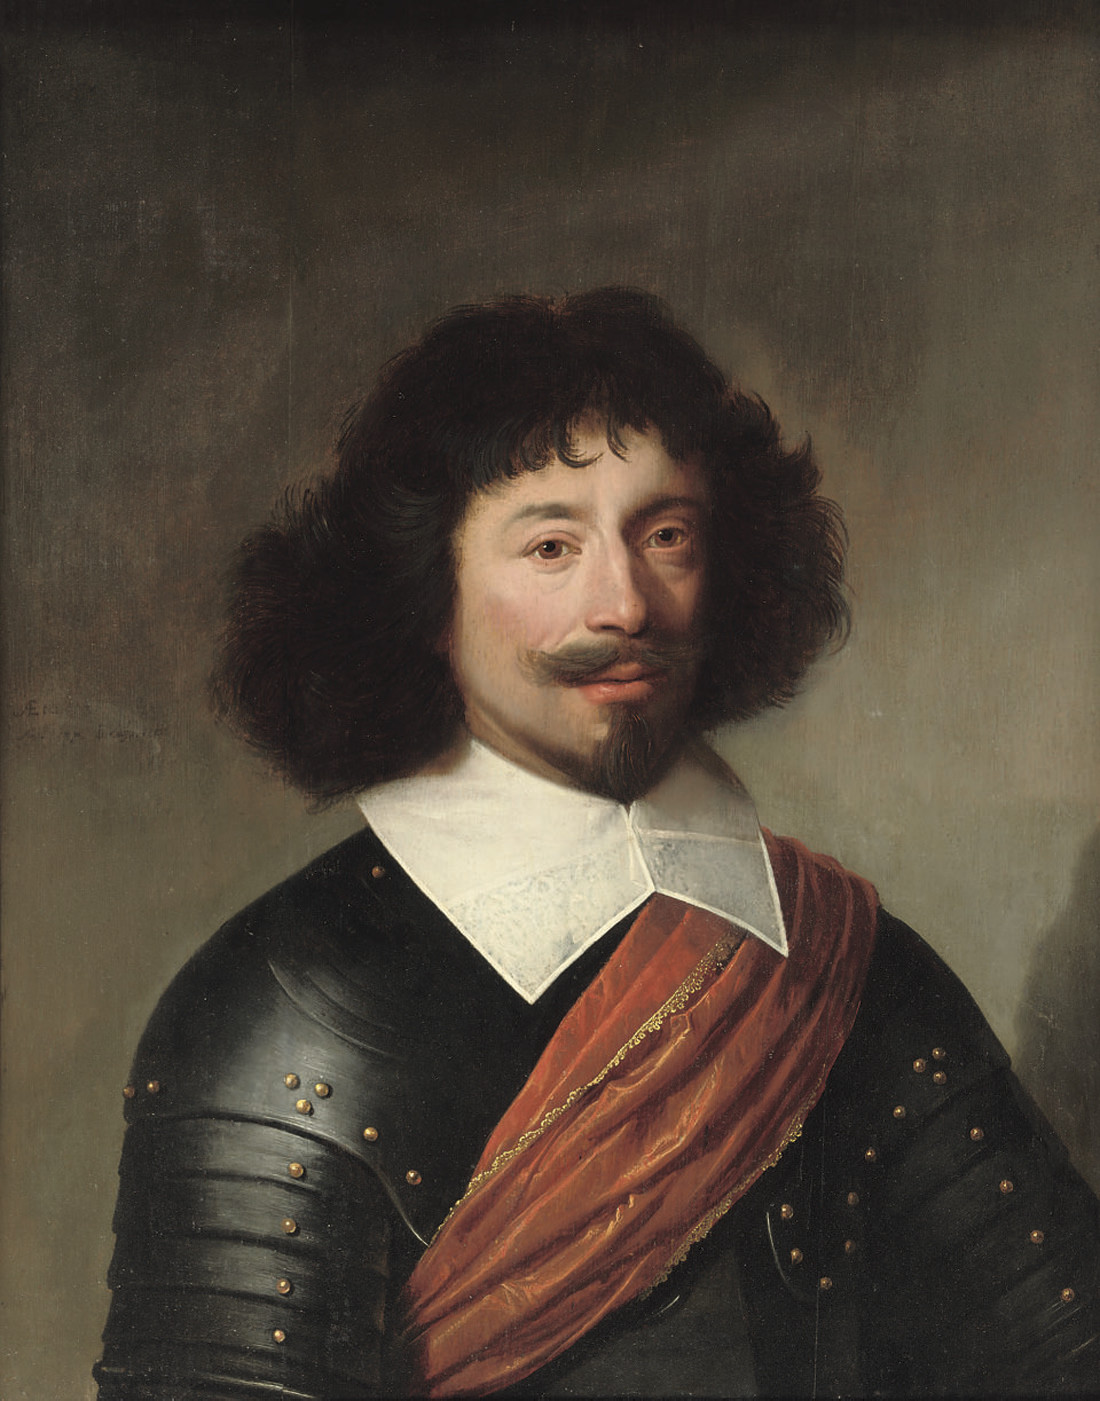 Portrait of an officer, half-length, in armor, with a red sash